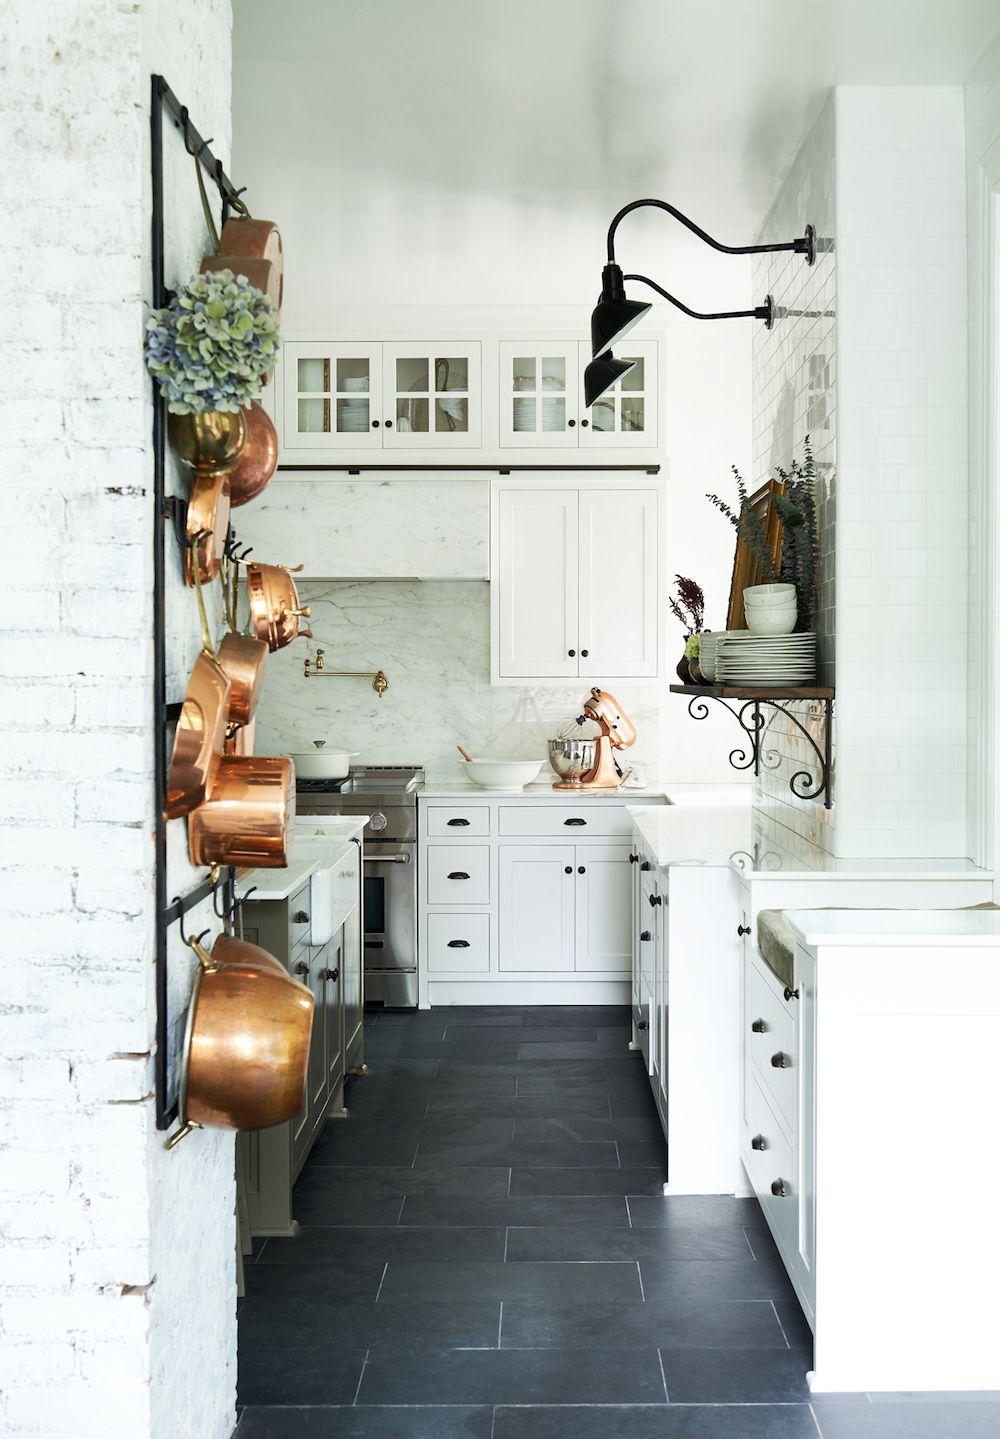 Black And White Kitchen With Interior Design By Leanne Ford And Bohemian Decor Modernf Country Chic Kitchen Interior Design Kitchen Country Kitchen Lighting